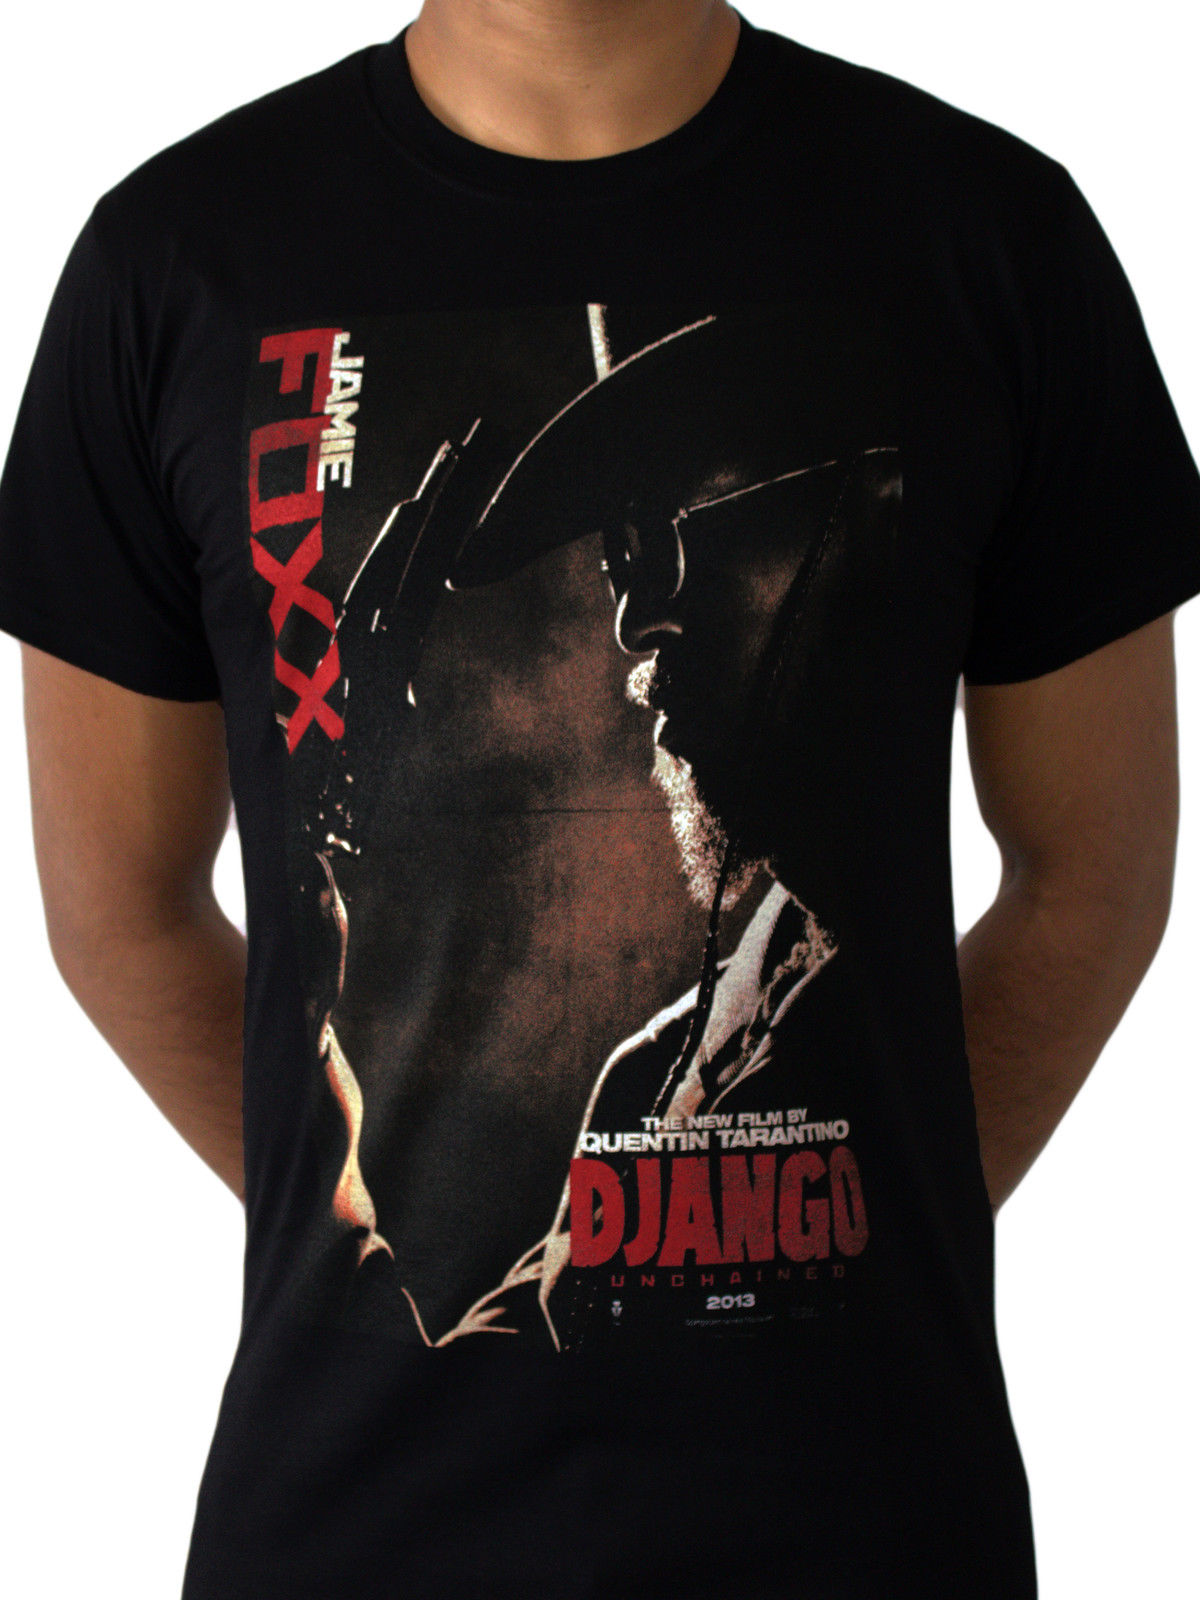 unchained-jamie-movie-poster-font-b-tarantino-b-font-western-black-mens-t-shirt-male-harajuku-top-fitness-brand-clothing-letter-top-tee